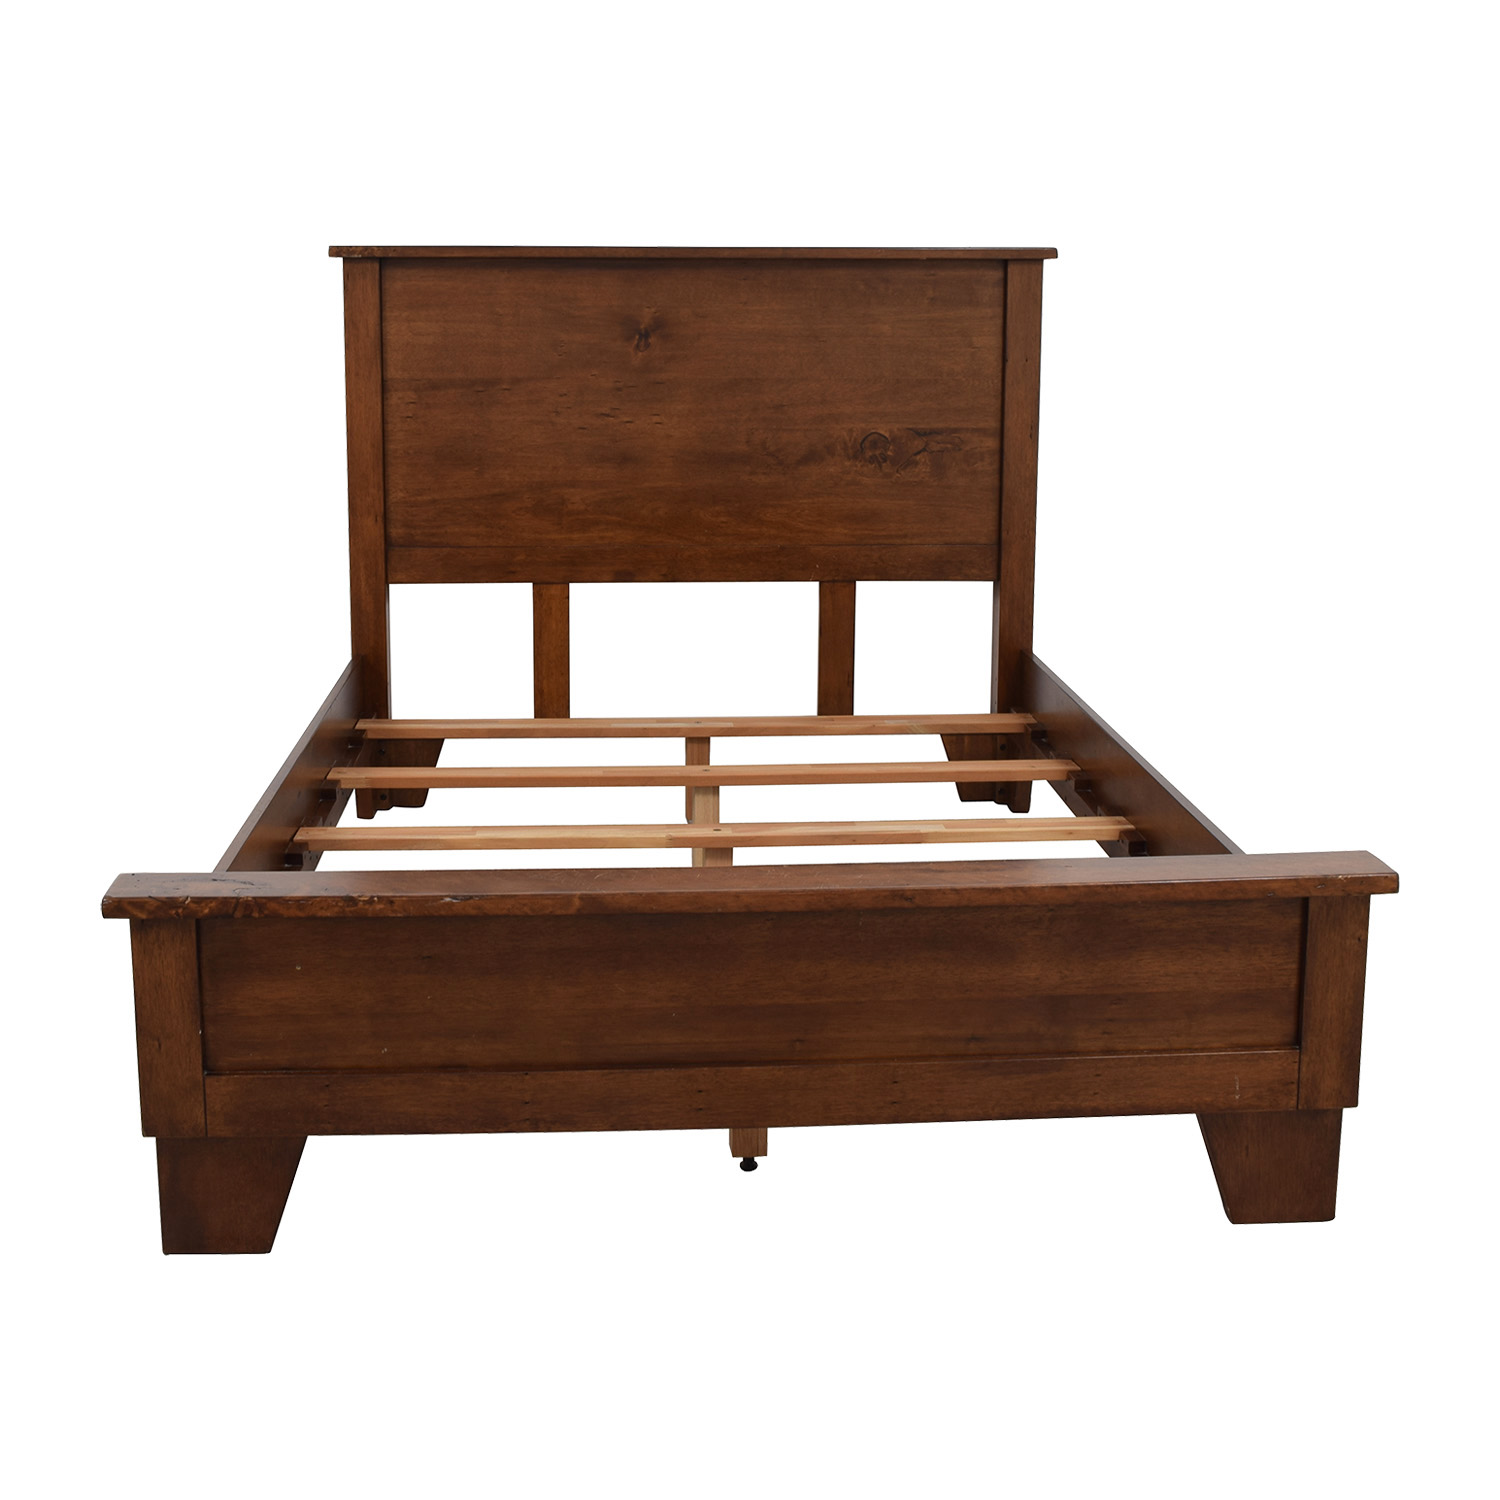 Buy A Bed 90 Off Pottery Barn Pottery Barn Sumatra Wood Full Bed Frame Beds